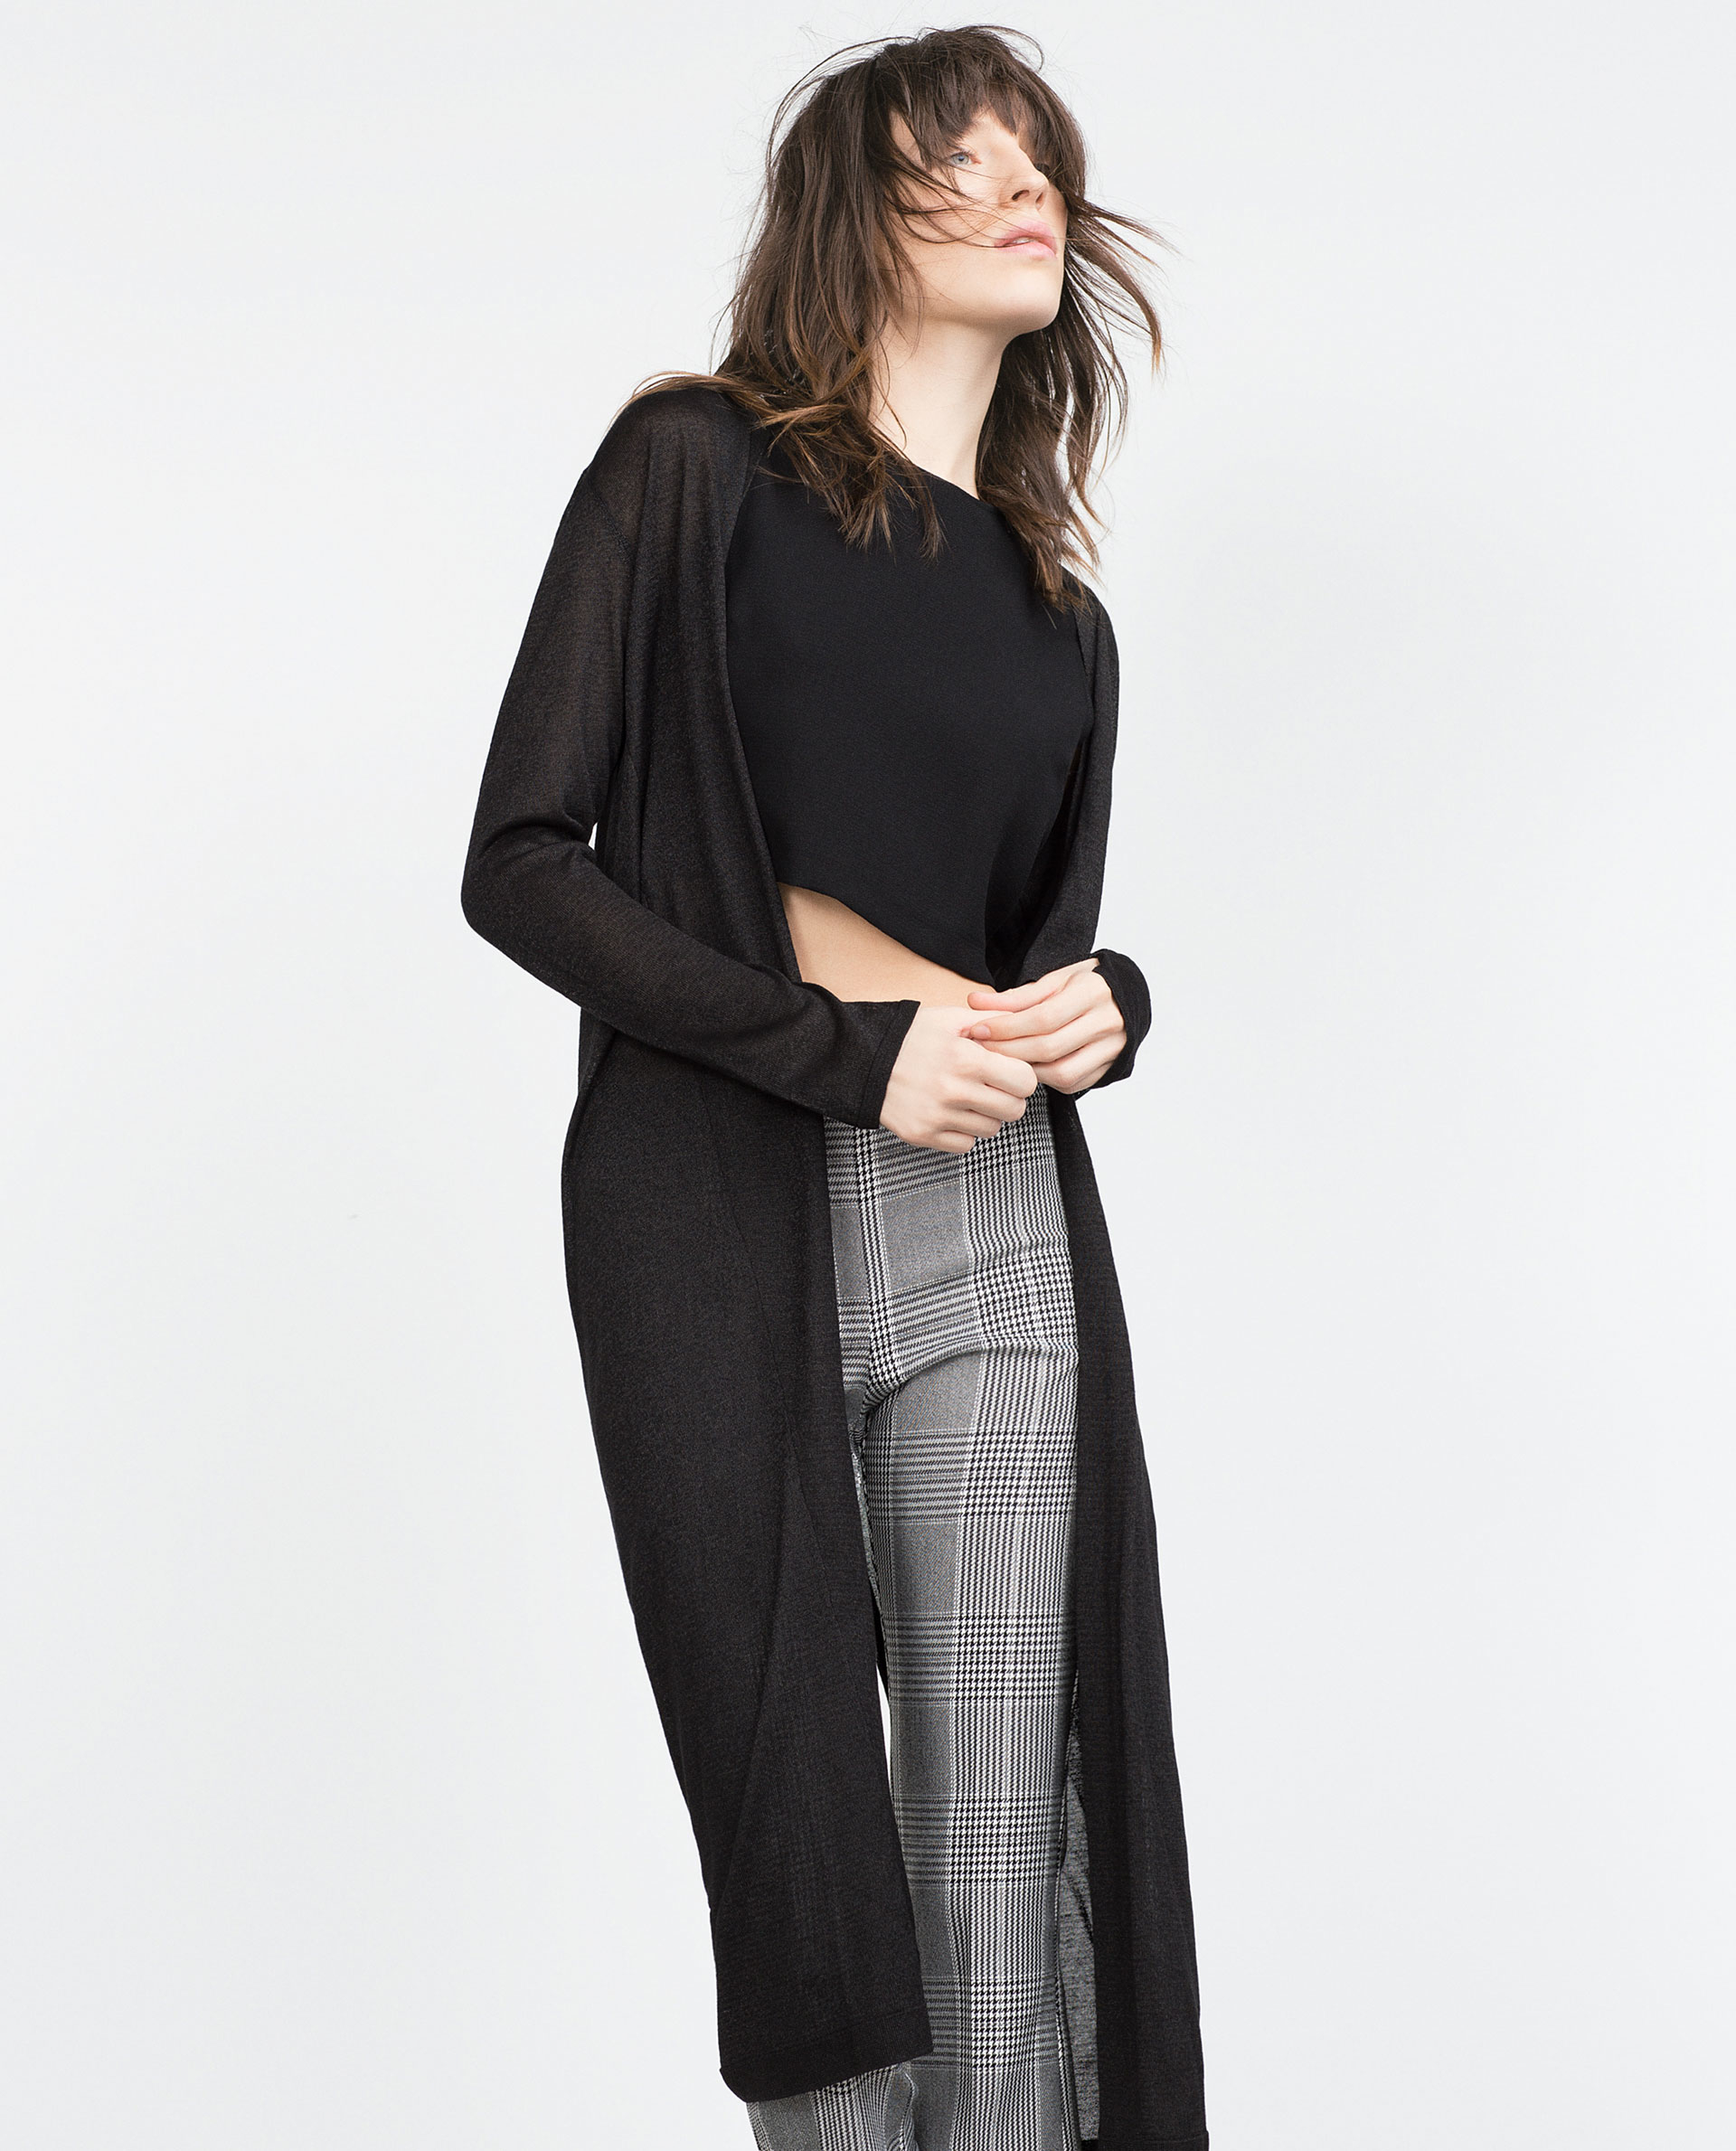 Shop for amazing bargains on Zara in Cardigans at Vinted! Save up to 80% on Cardigans and pre-loved clothing to complete your style.